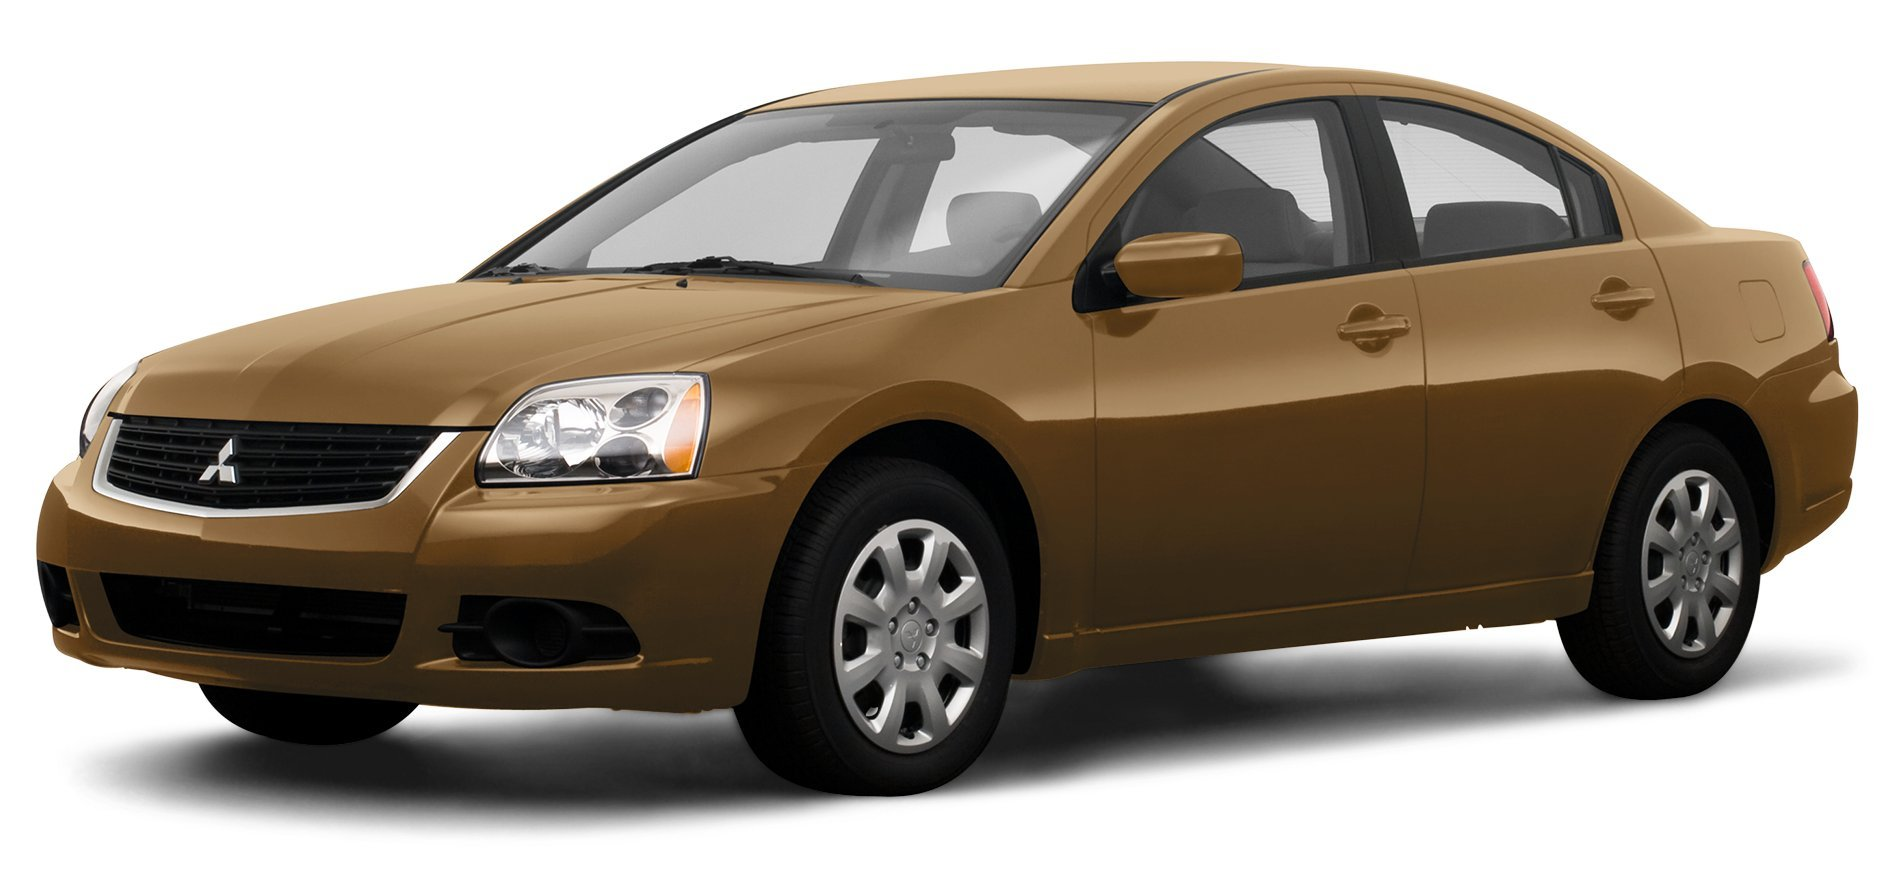 2009 mitsubishi galant reviews images and. Black Bedroom Furniture Sets. Home Design Ideas